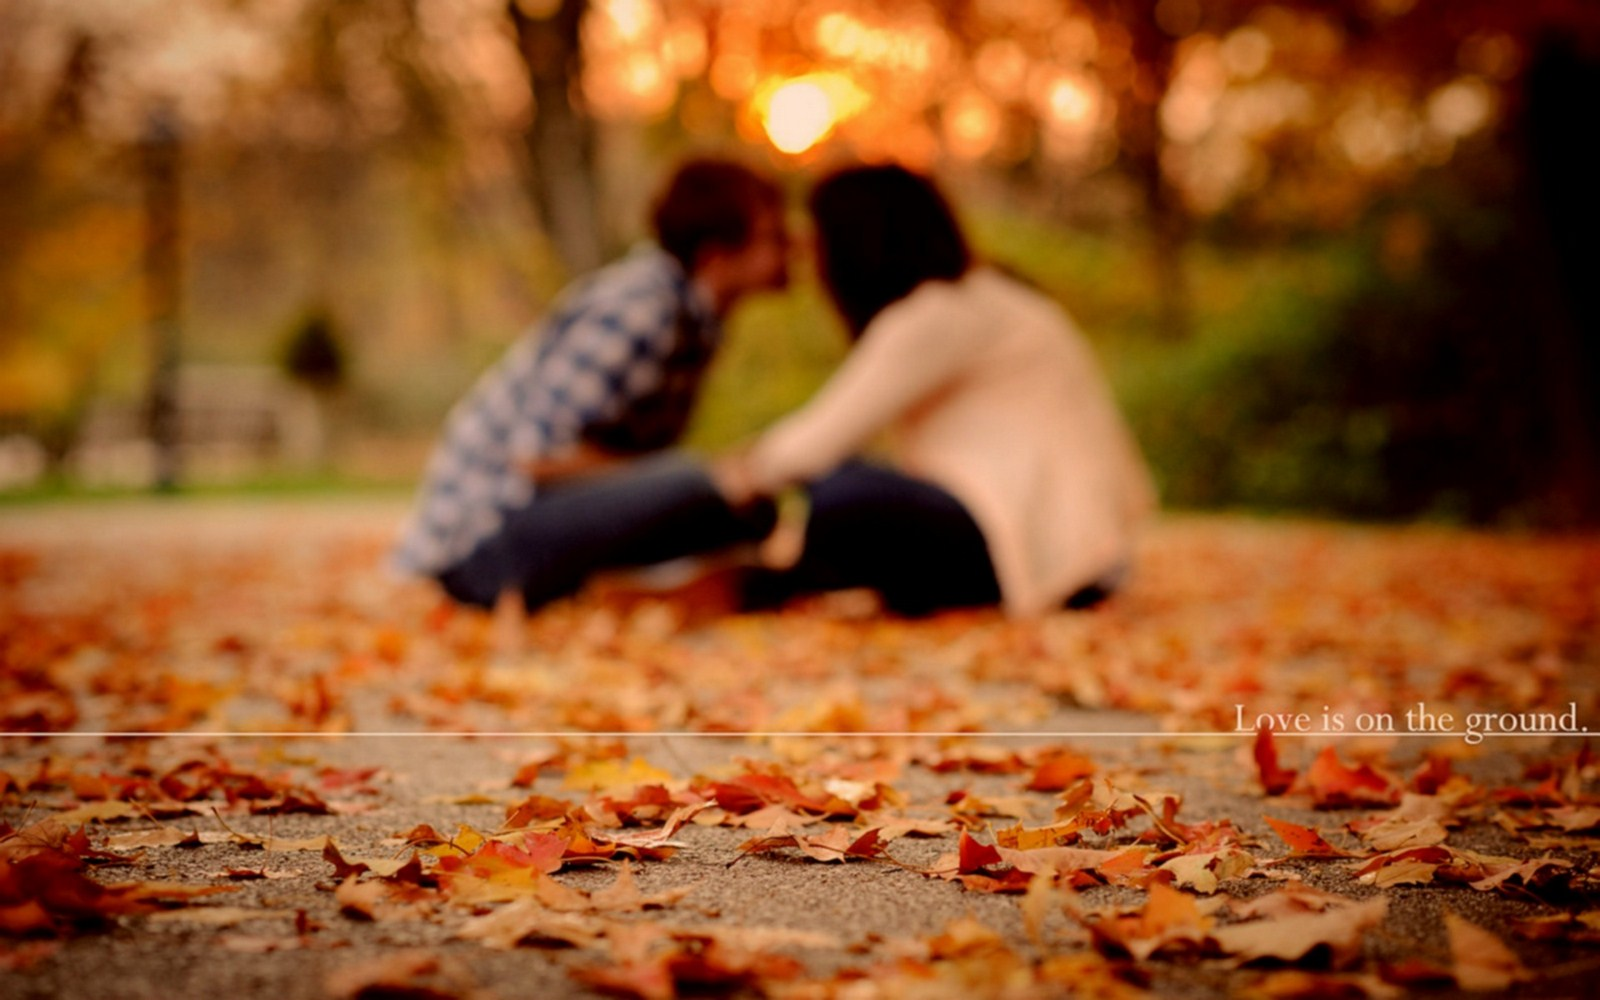 http://2.bp.blogspot.com/-faFR50MA-ho/UFldUwgXwAI/AAAAAAAAAZg/jVZaEPFkV6o/s1600/Mood+Love+Couple+Boy+And+Girl+Autumn+Leaf+Park+Photo+HD+Wallpaper+-+LoveWallpapers4u.Blogspot.Com.jpg